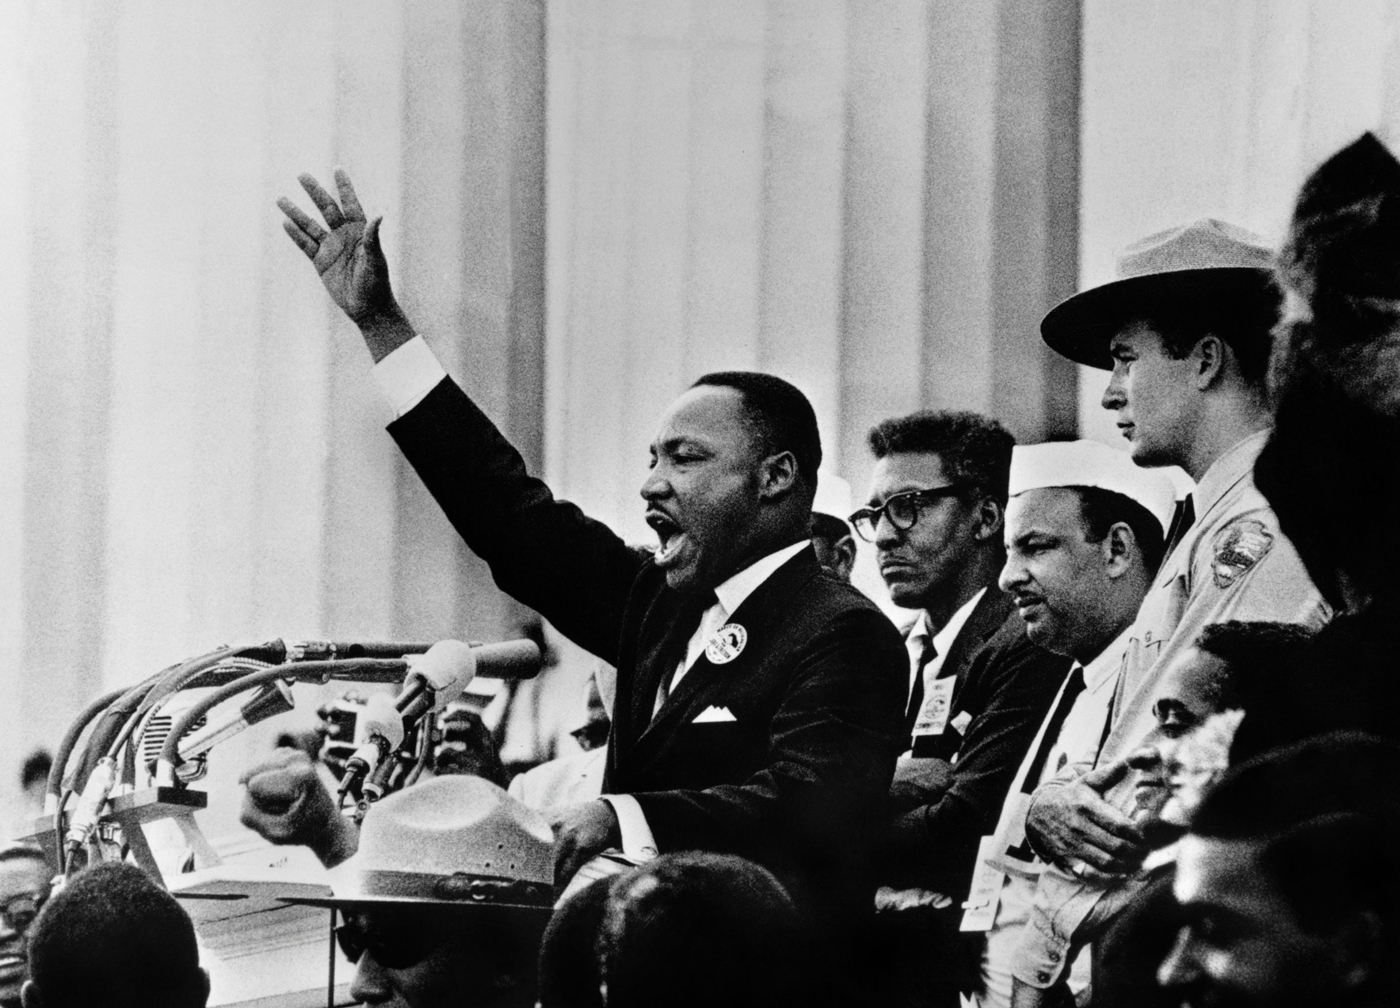 January 15 – Martin Luther King, Jr.'s Birthday (1929-1968)